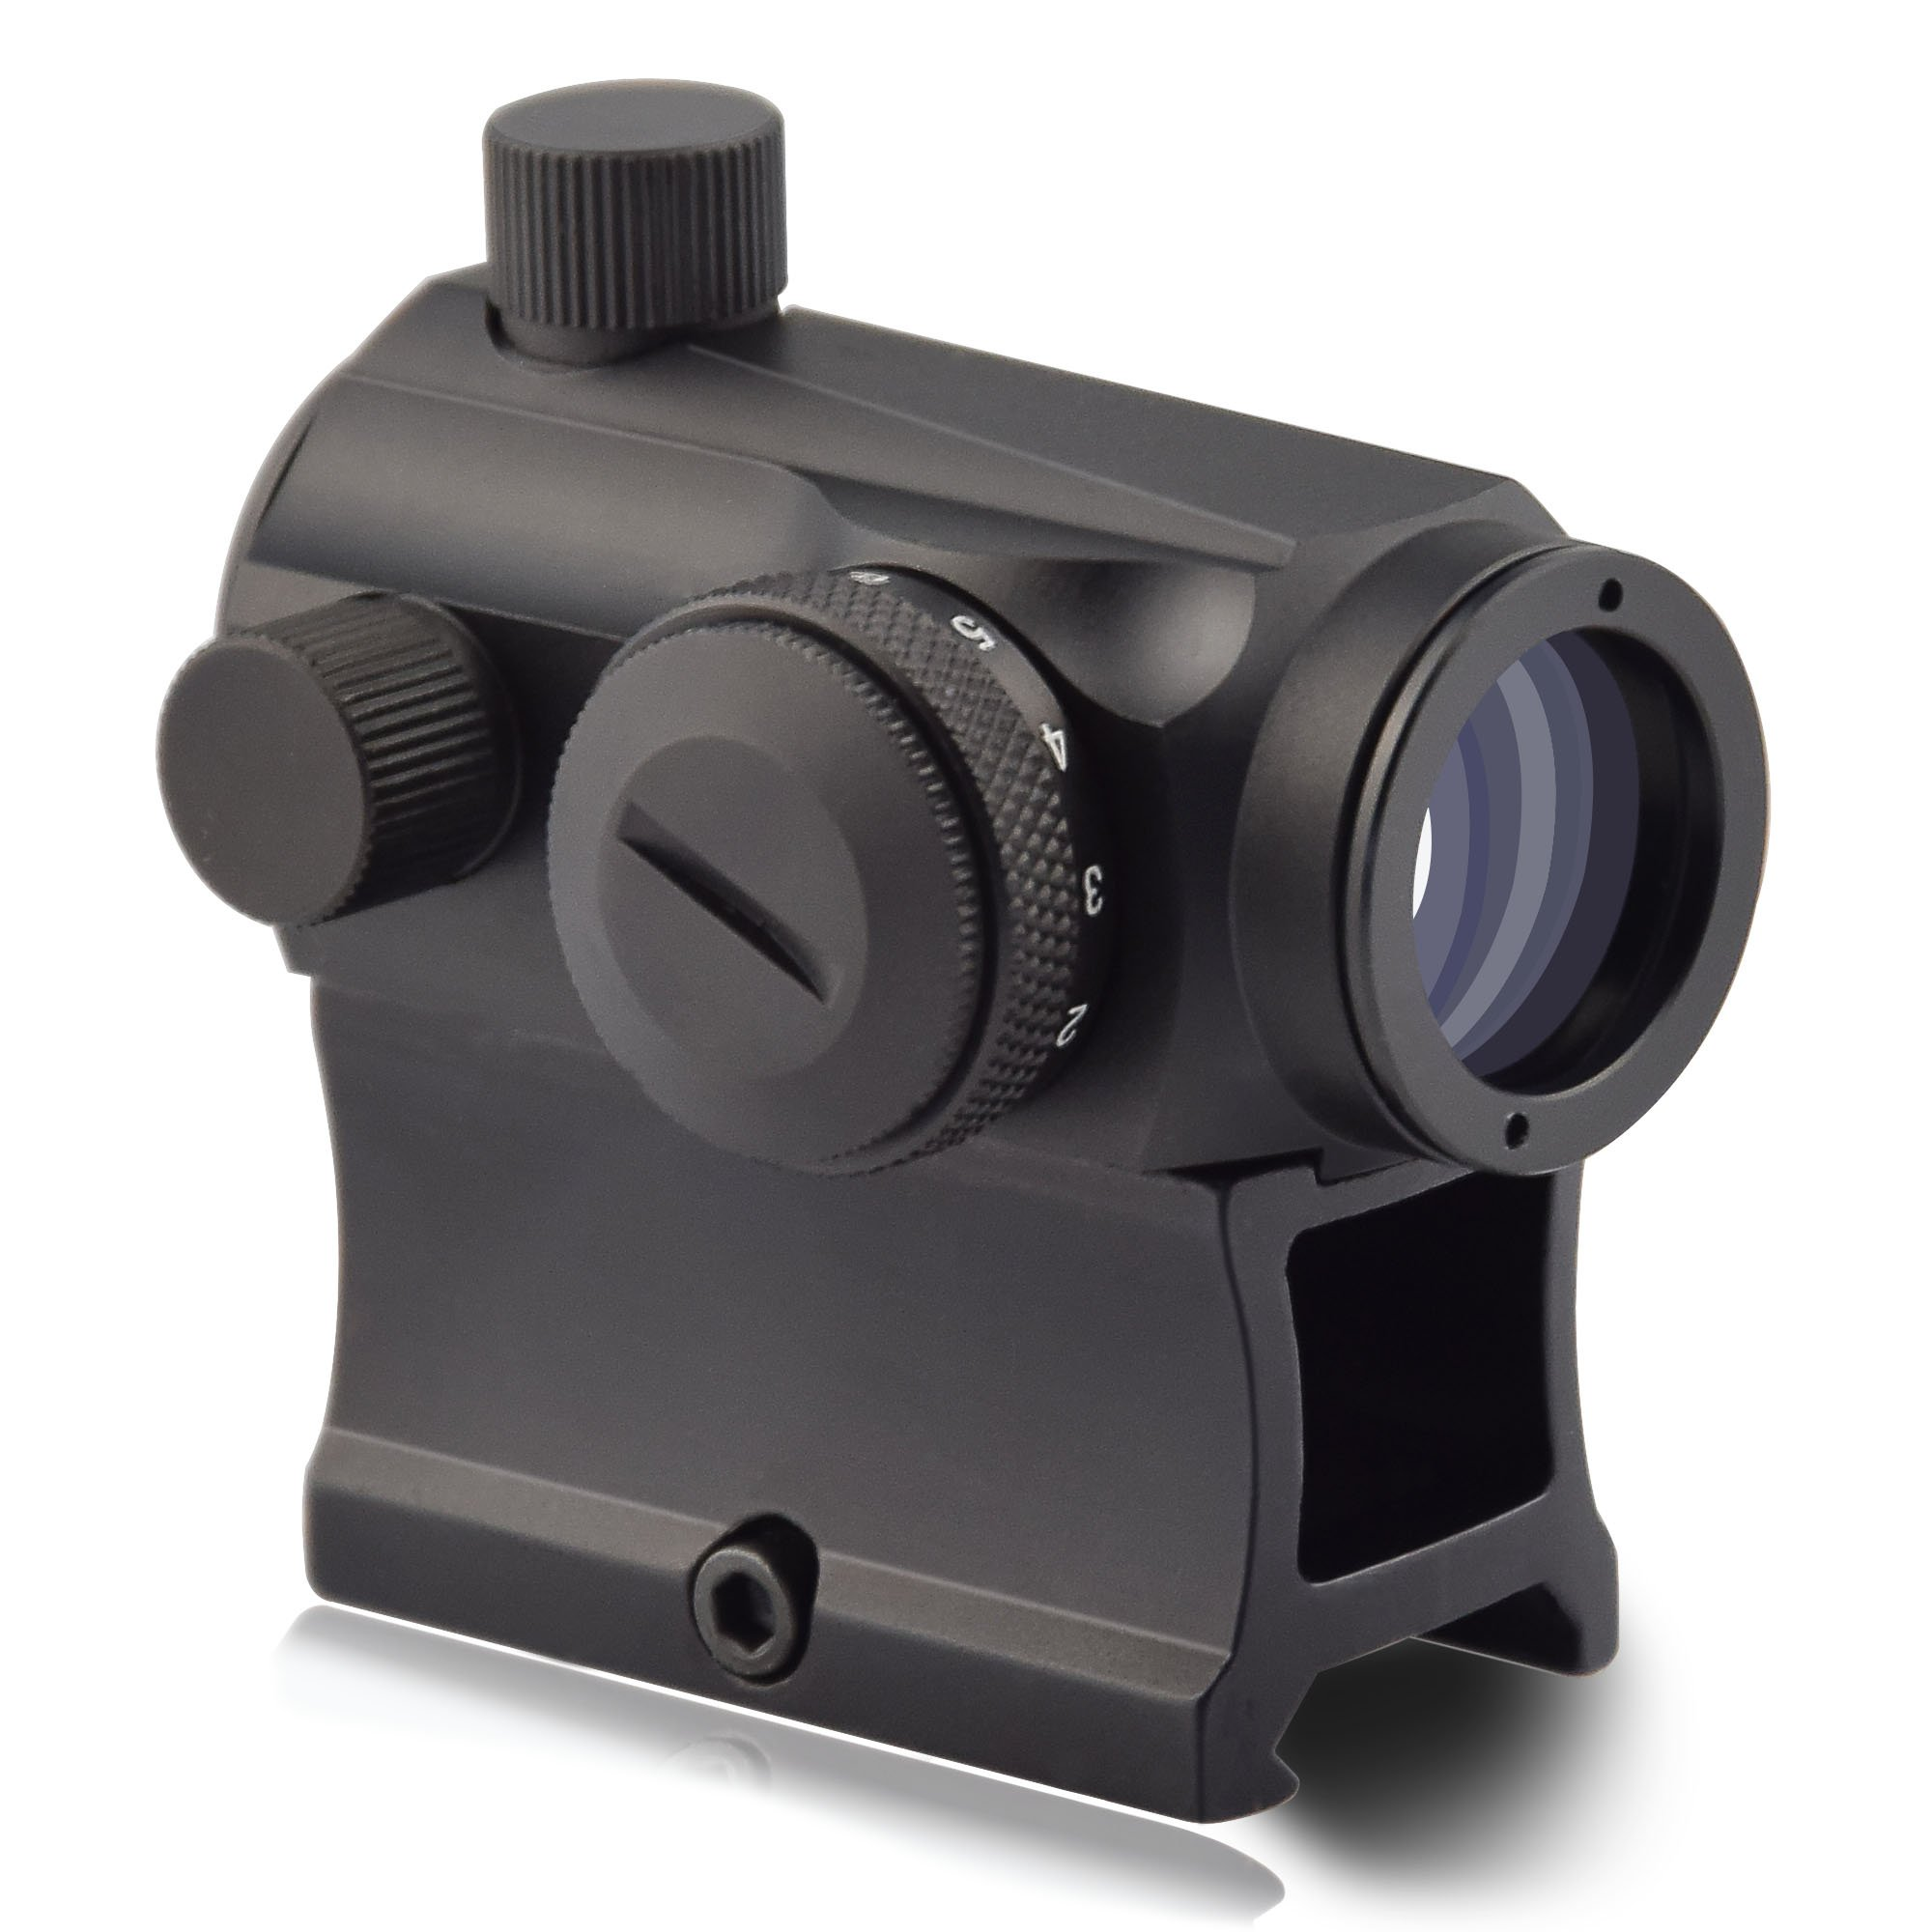 OTW Red Dot Sight,1x20mm 4 MOA Red Green Dot Sight Micro Rifle Scope by OTW